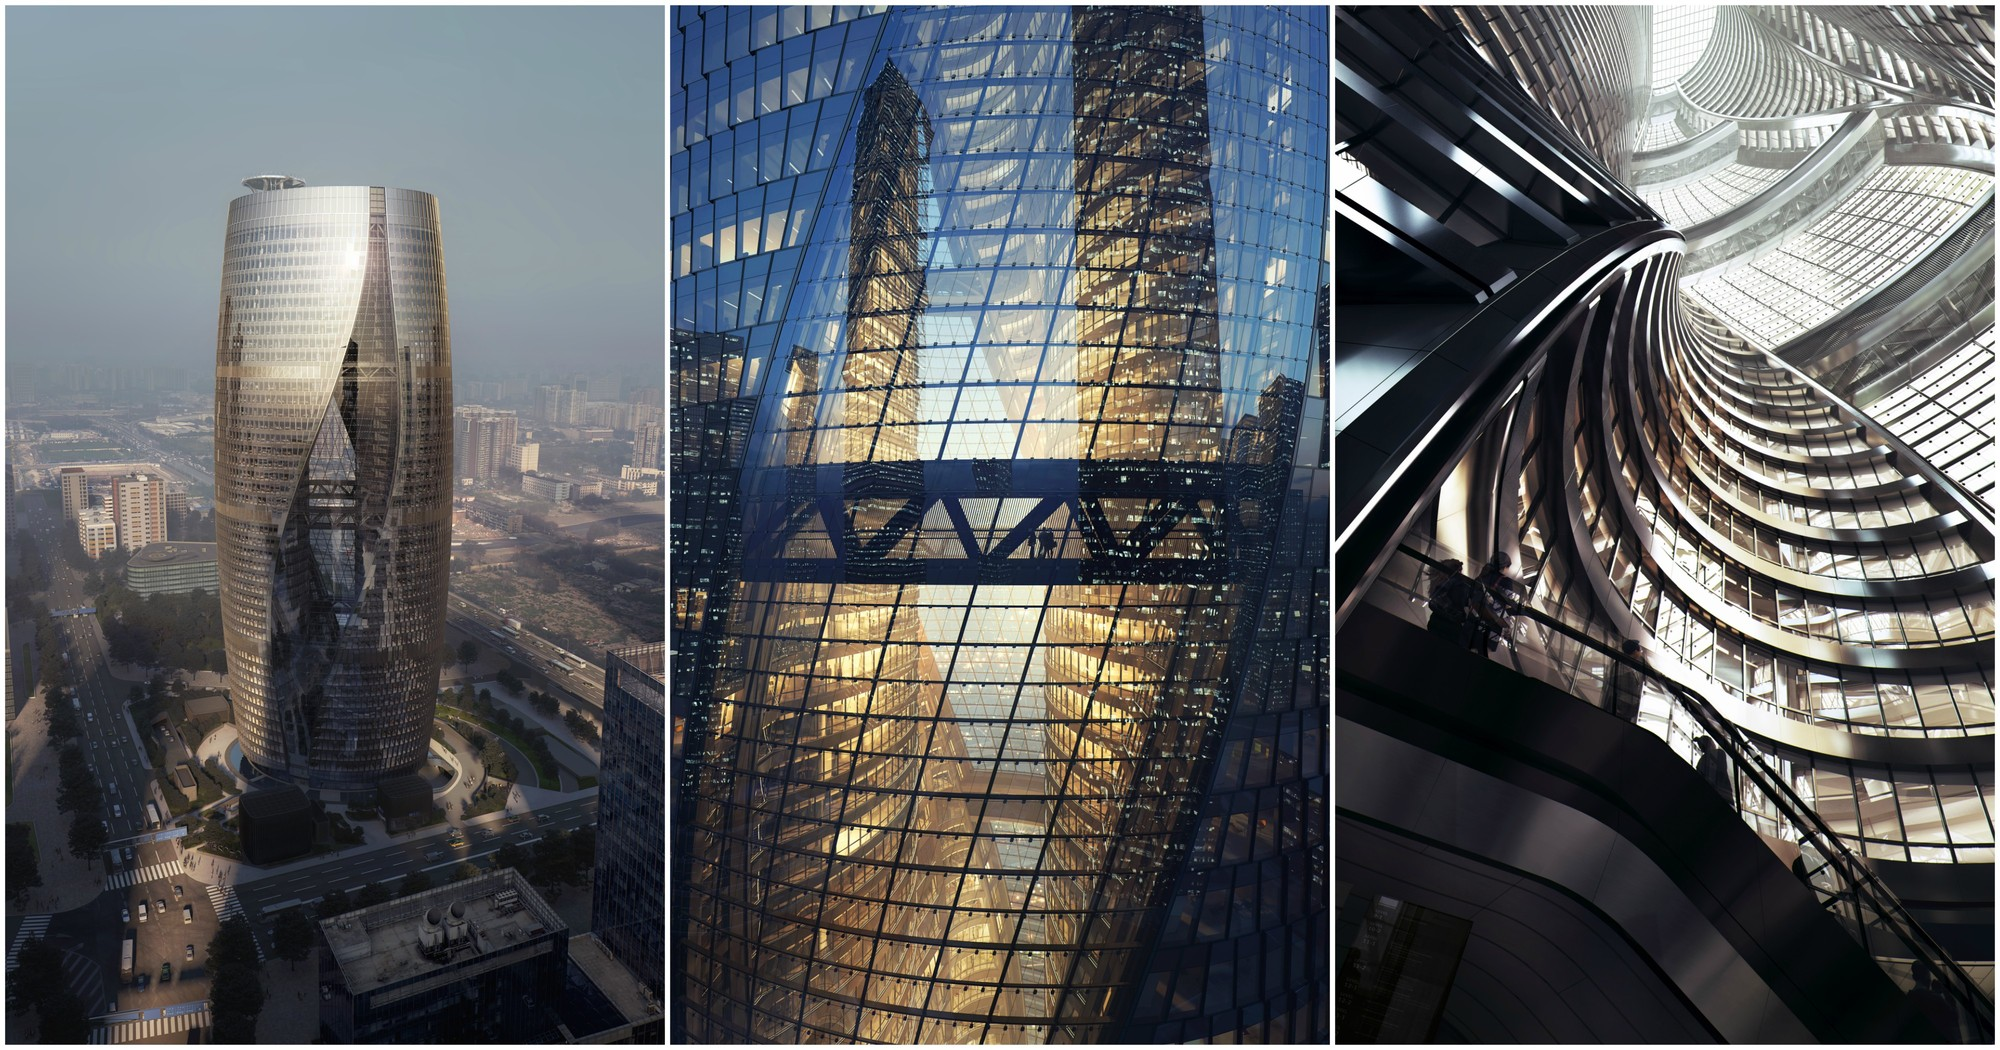 zaha hadid architects releases images of tower with the world 39 s tallest atrium archdaily. Black Bedroom Furniture Sets. Home Design Ideas